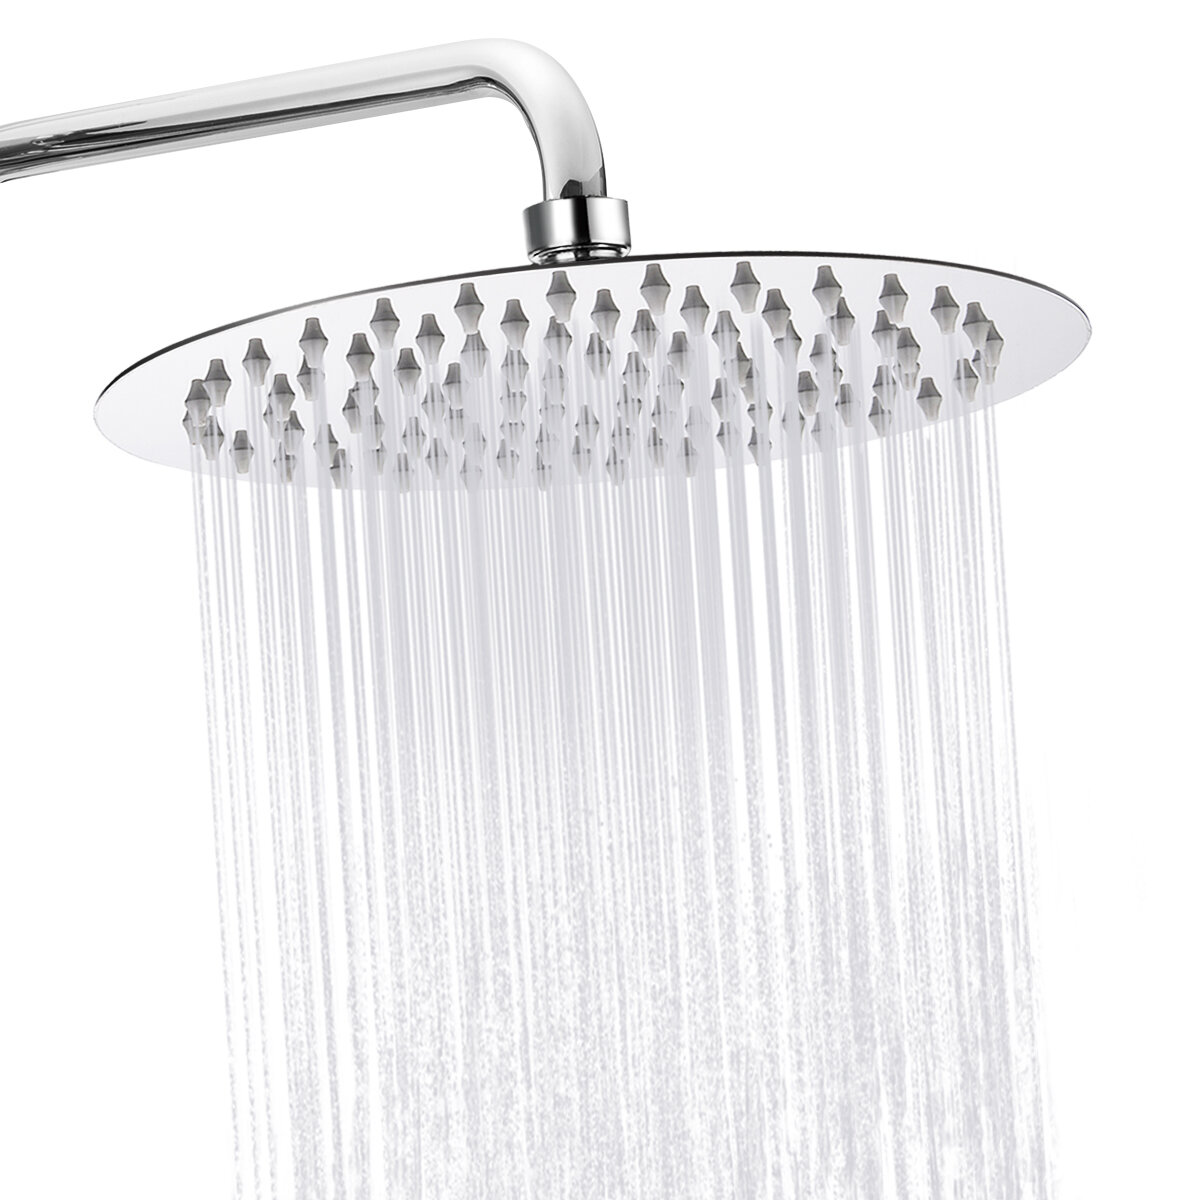 Showers Shower Parts High Pressure Shower Head Bathroom